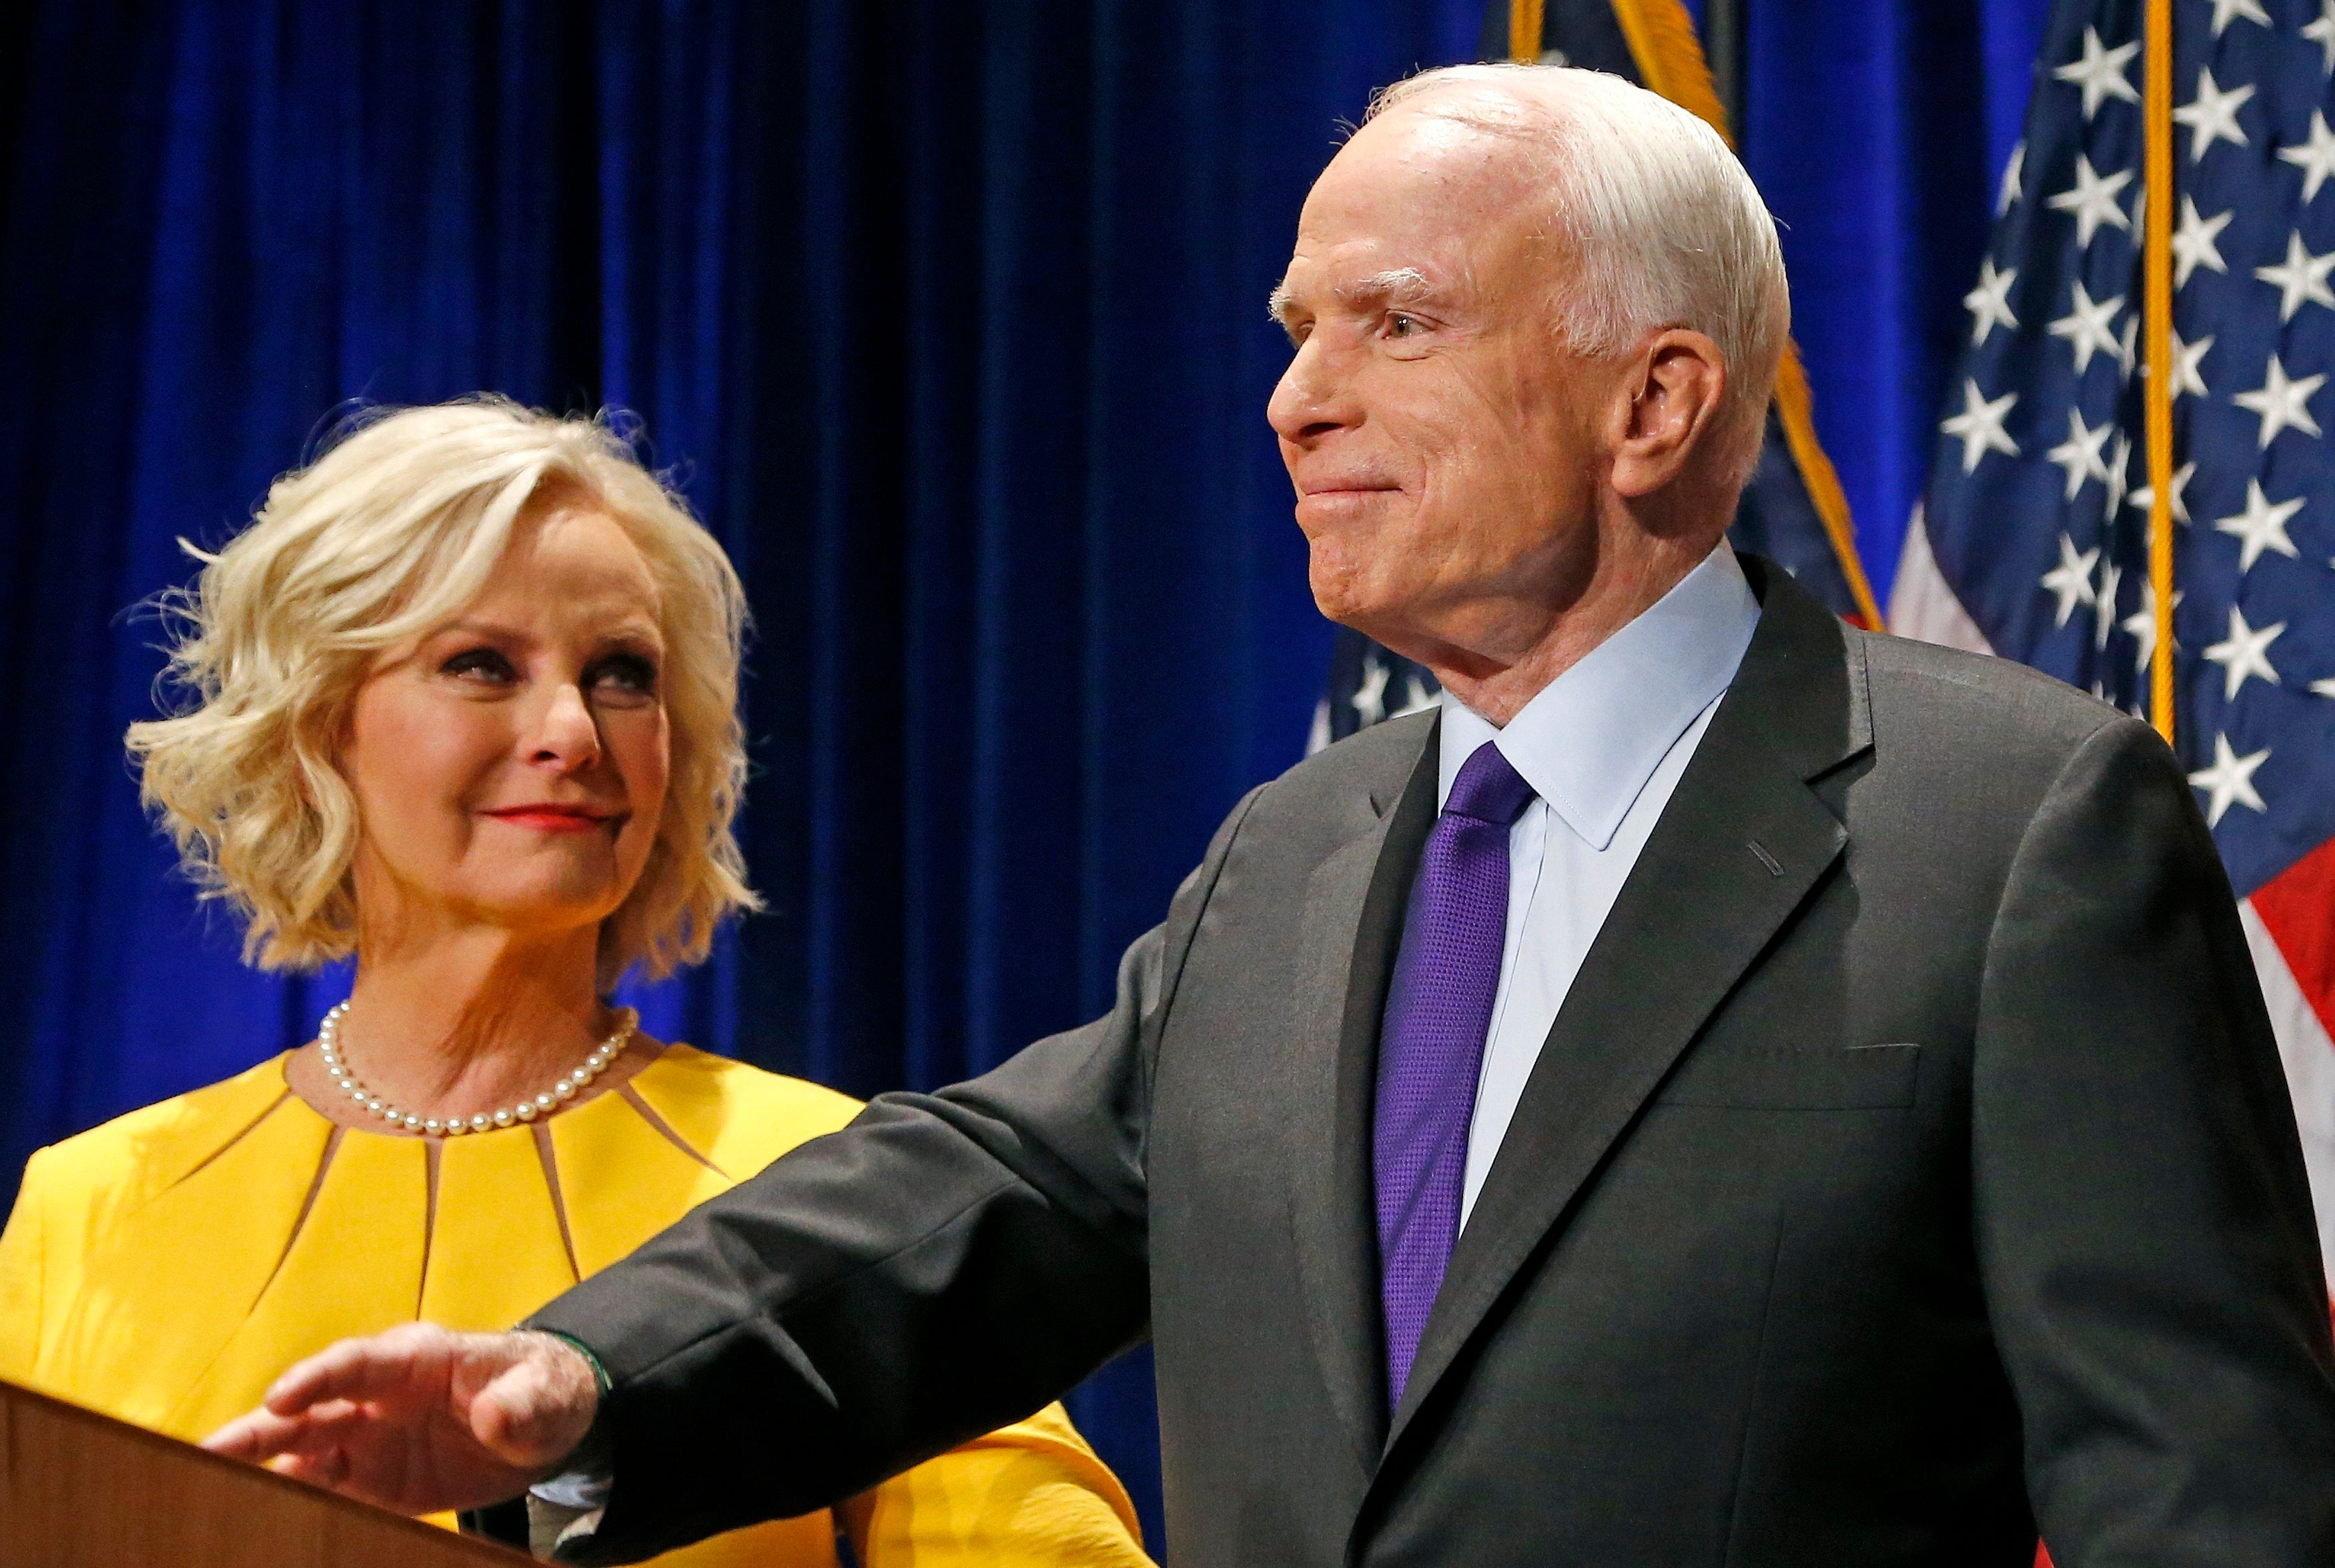 Sen. John McCain, R-Ariz., right, pauses as his wife Cindy McCain, left, looks at him on stage after giving his victory speech as he announces his win over Democratic challenger Rep. Ann Kirkpatrick Tuesday, Nov. 8, 2016, in Phoenix. (AP Photo/Ross D. Franklin)